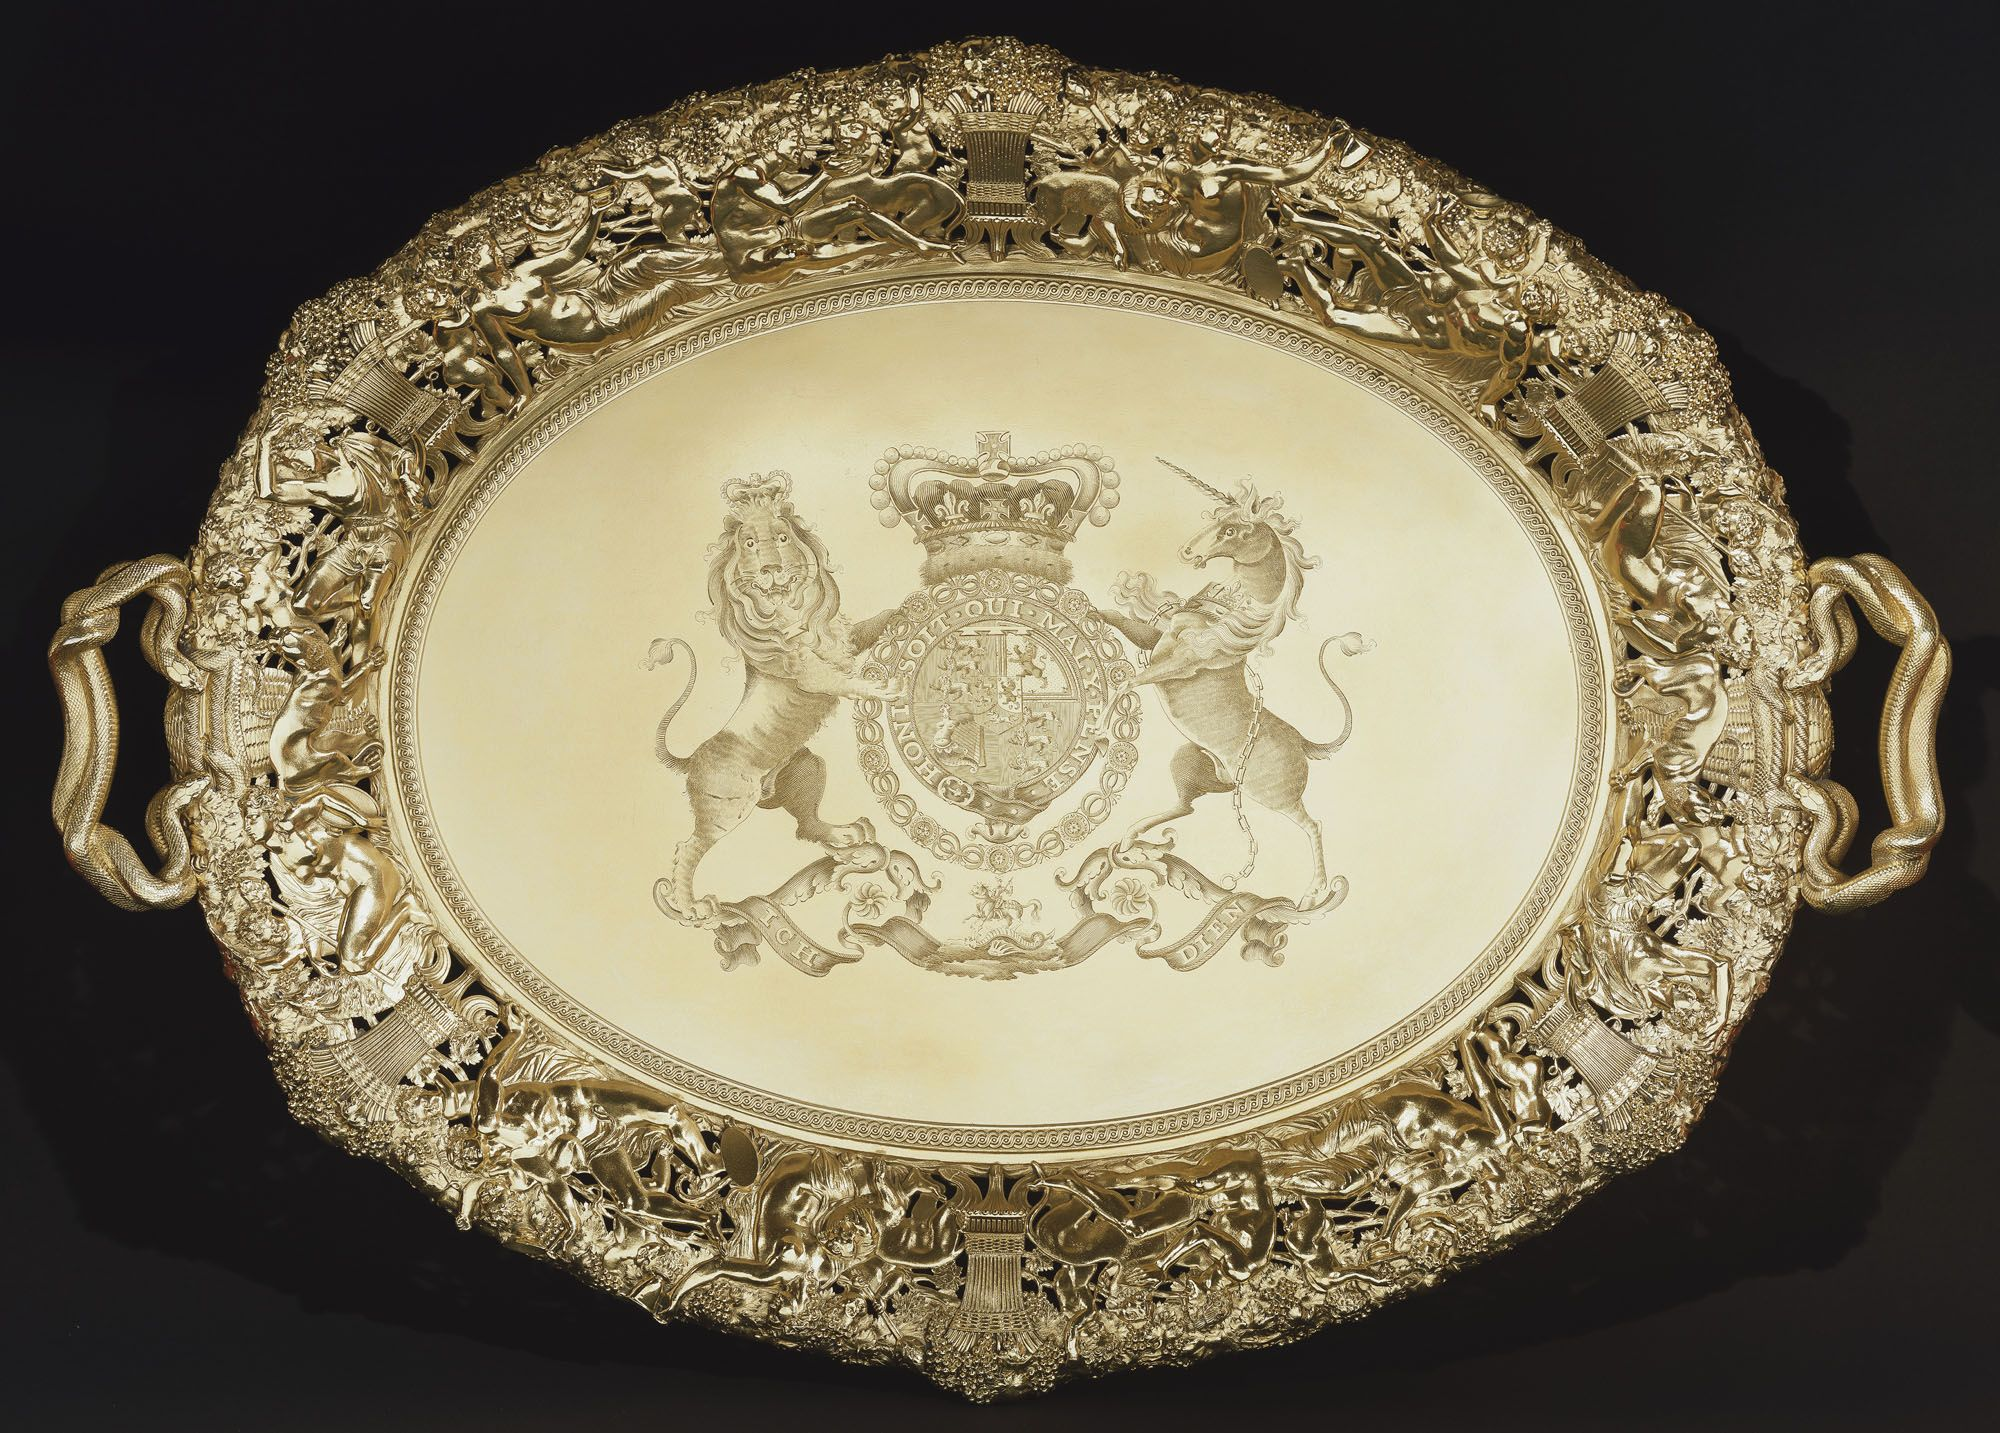 1812 silver gilt tray with the engraved Royal coat of arms of the ...